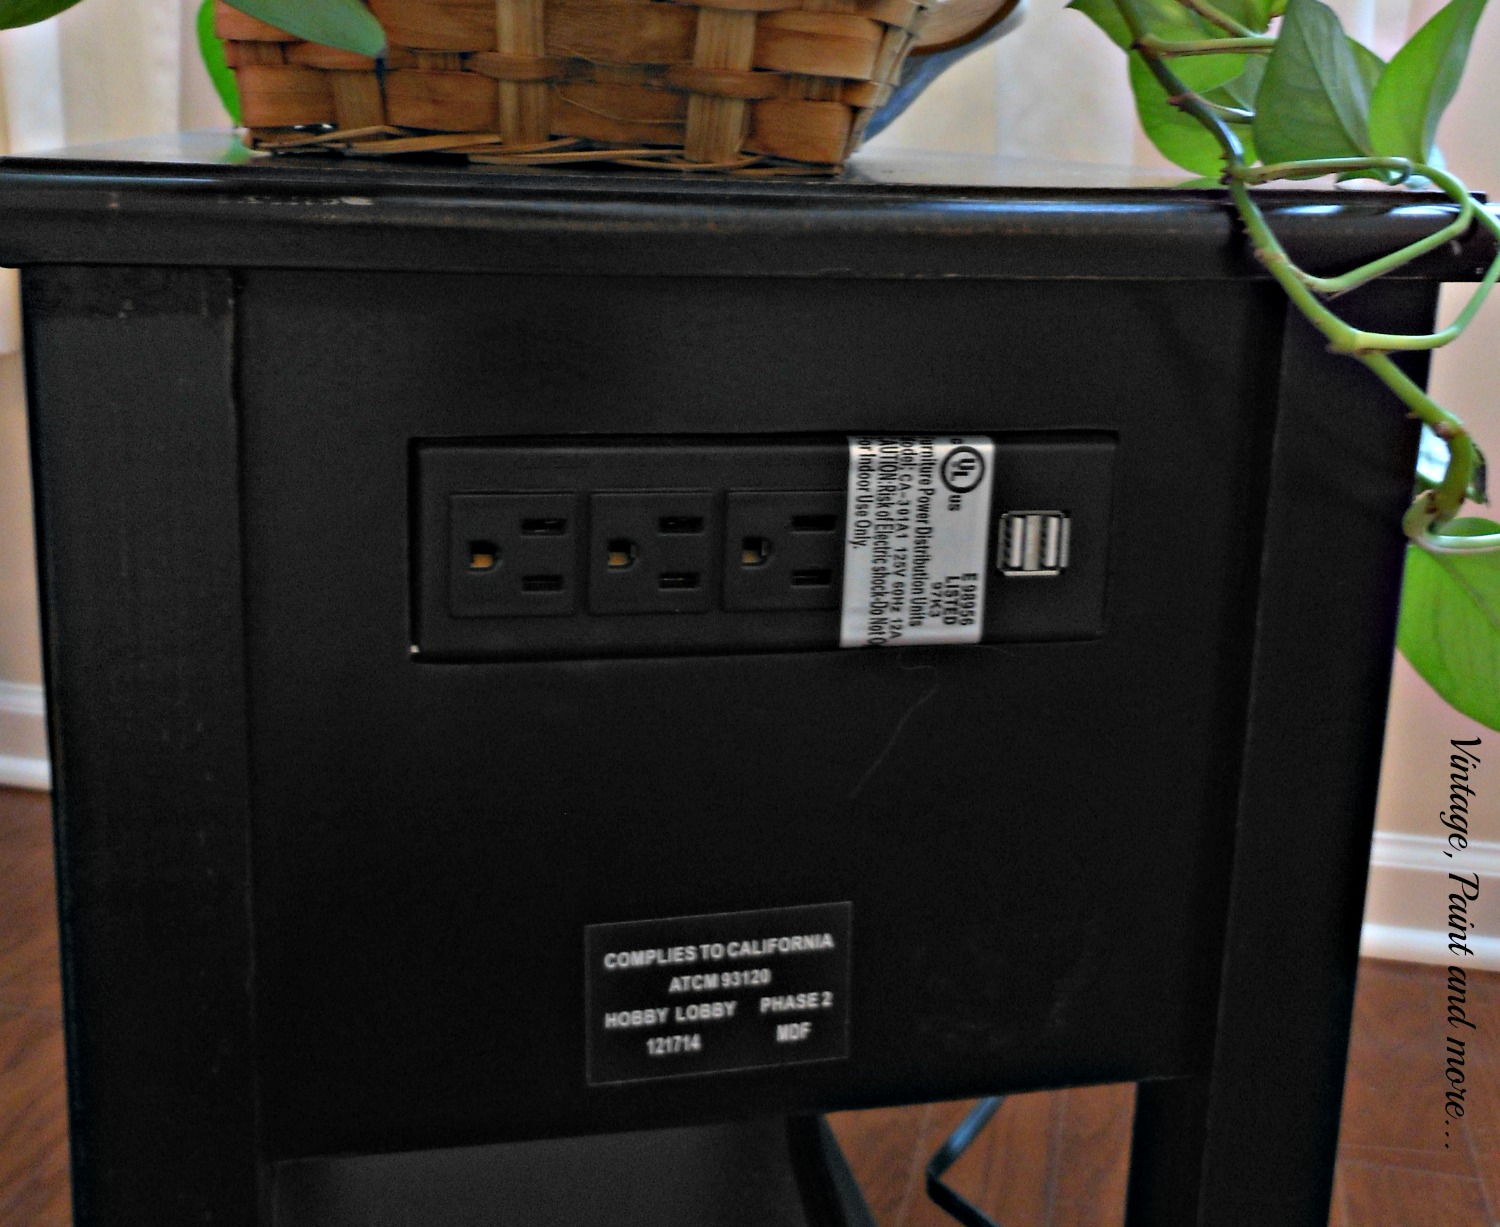 a small side table with electrical outlets and USB ports to charge your eclectronics